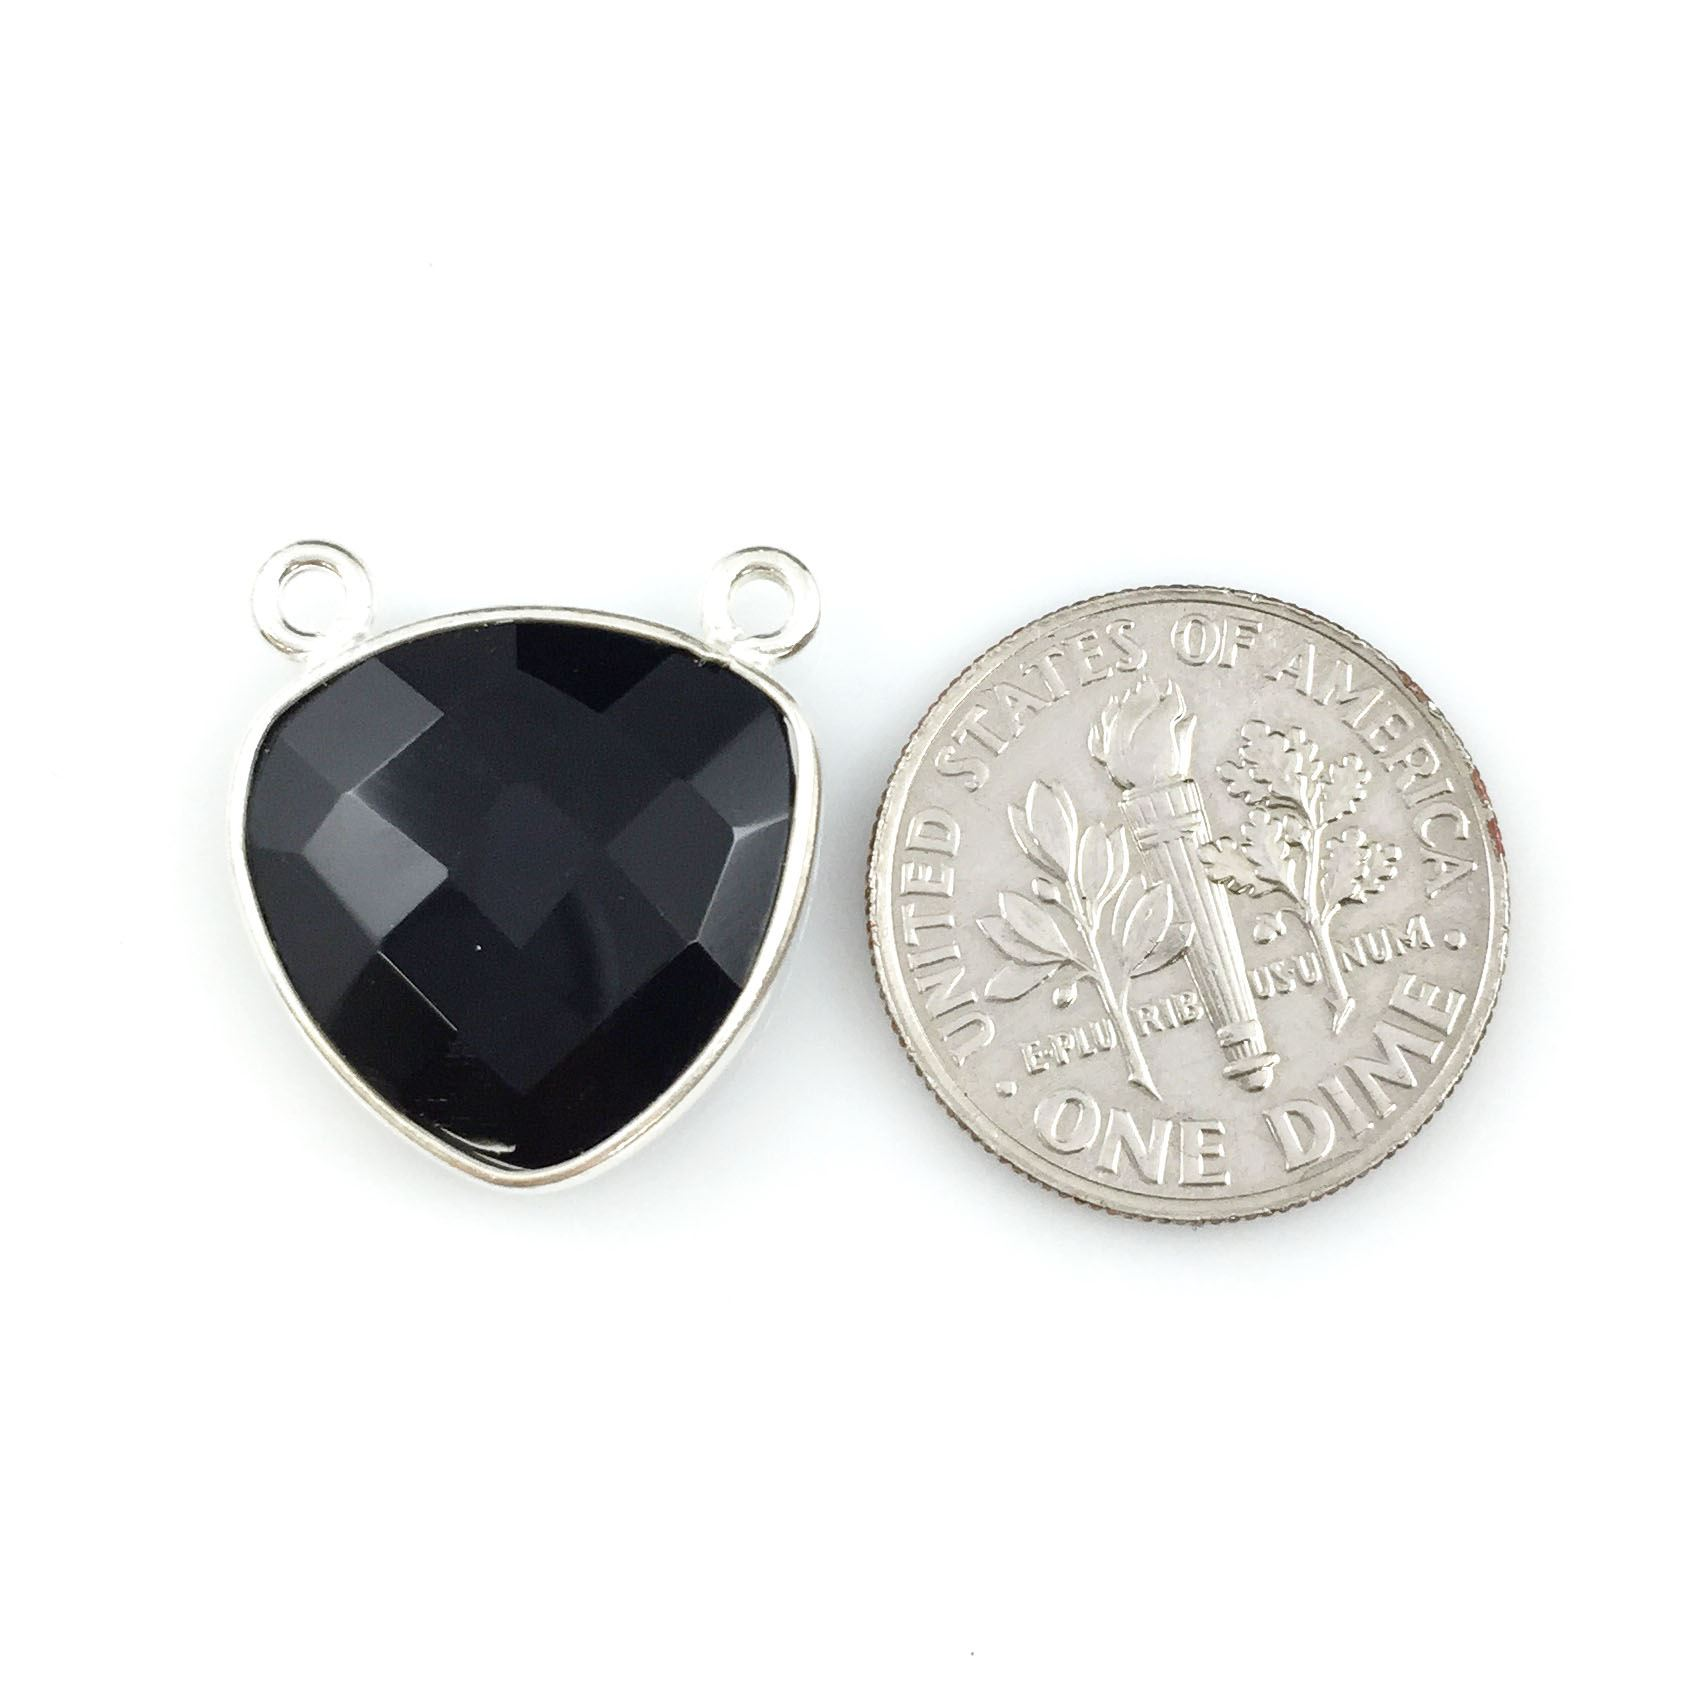 Bezel Gemstone Connector Pendant - Black Onyx - Sterling Silver - Small Trillion Shaped Faceted - 15mm - 1 piece